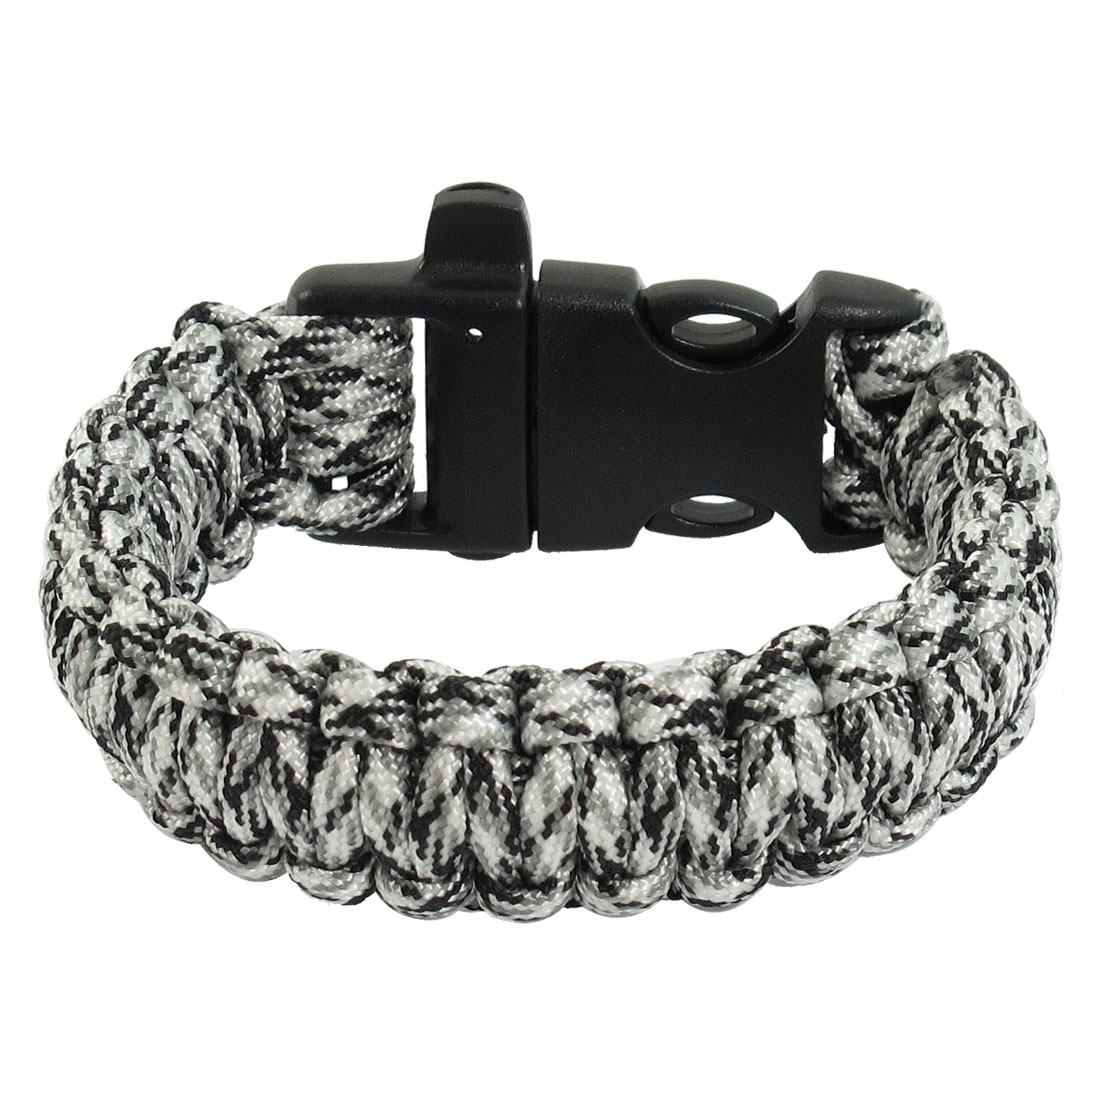 Whistle Desert Camo Plastic Quick Release Buckle Black White Survival Bracelet